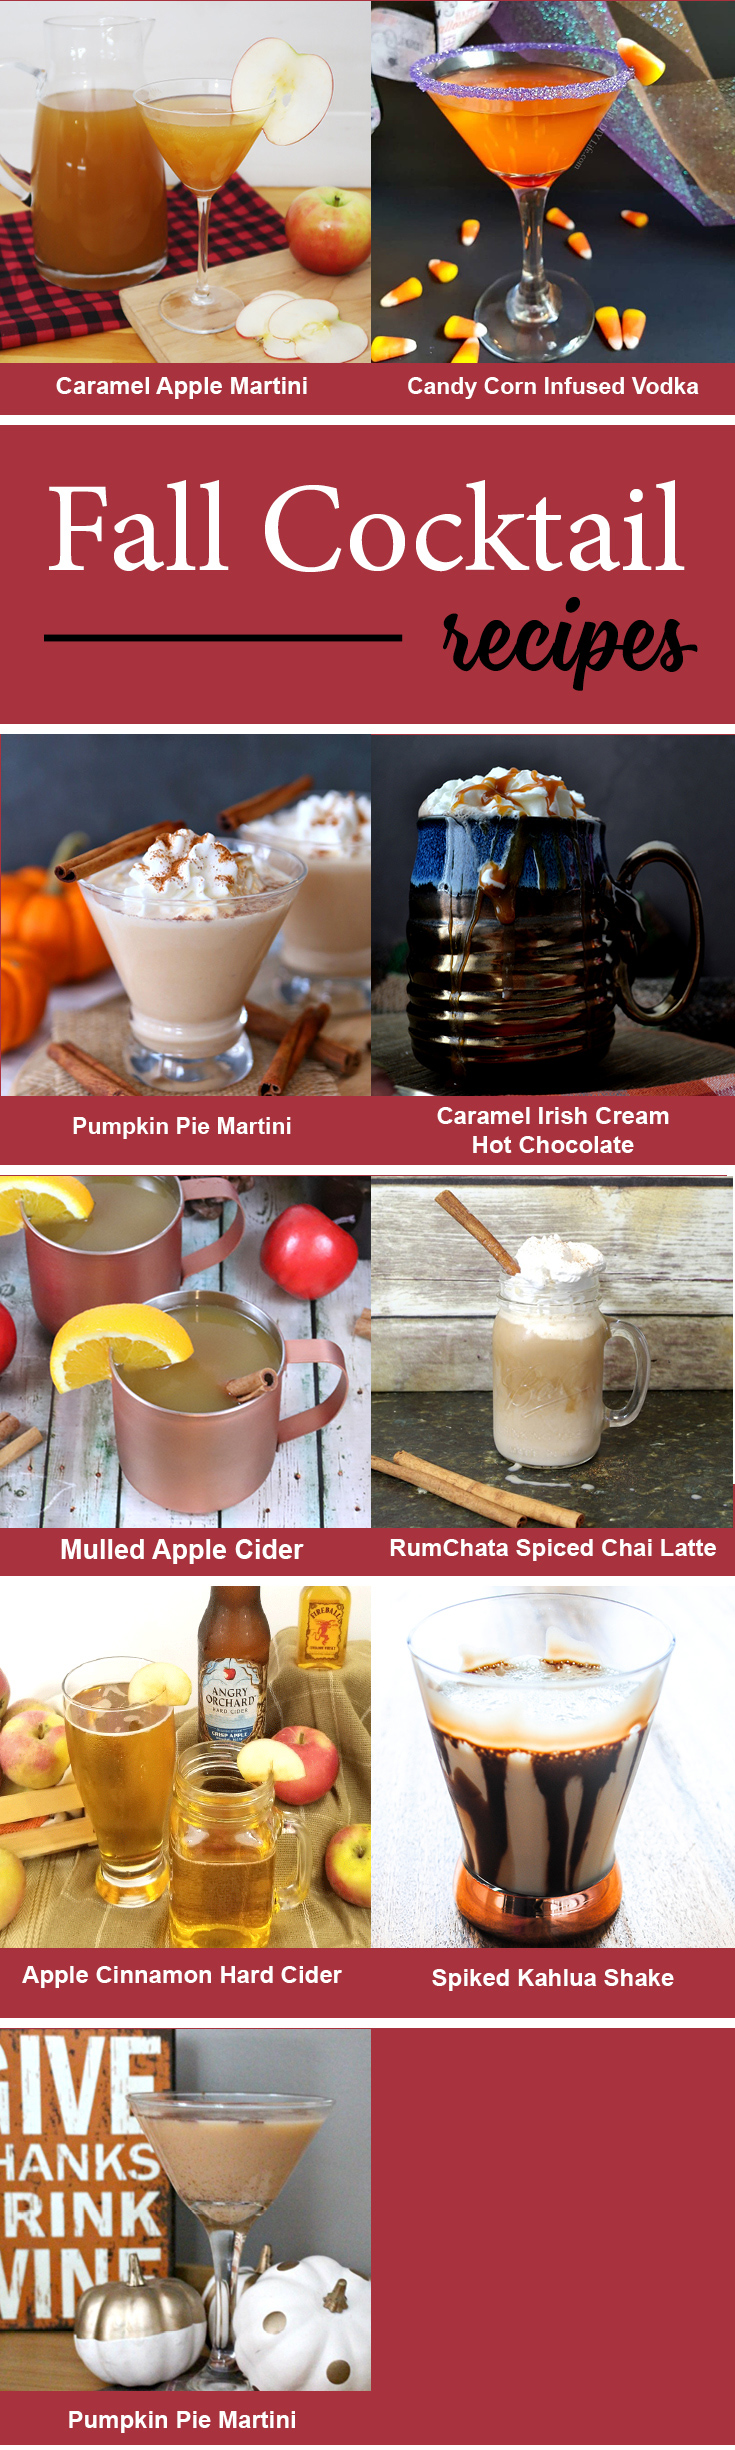 9 must-make fall cocktails